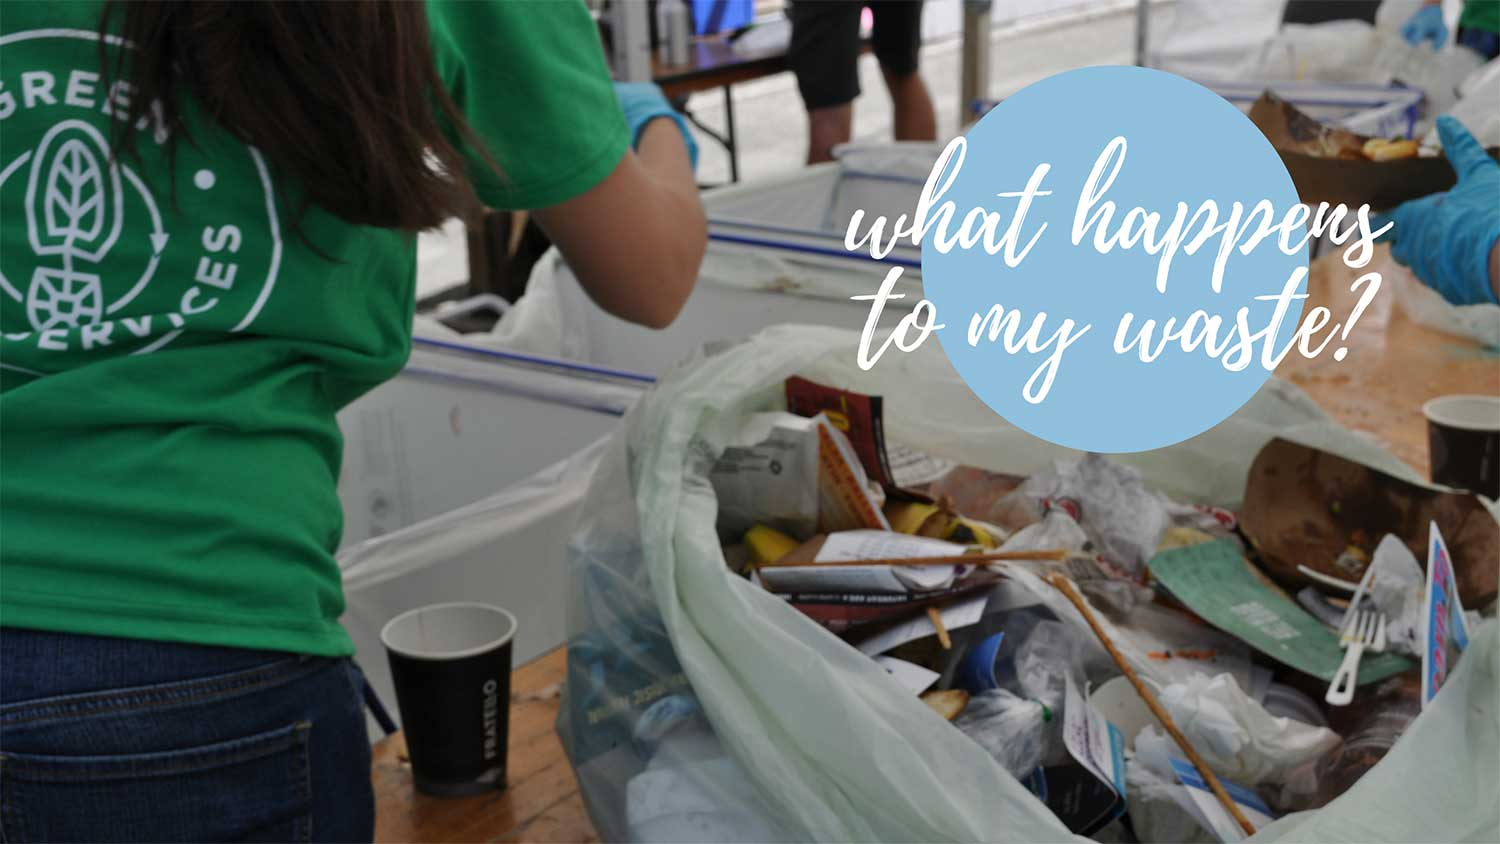 What Happens To Your Waste At A Green Event?